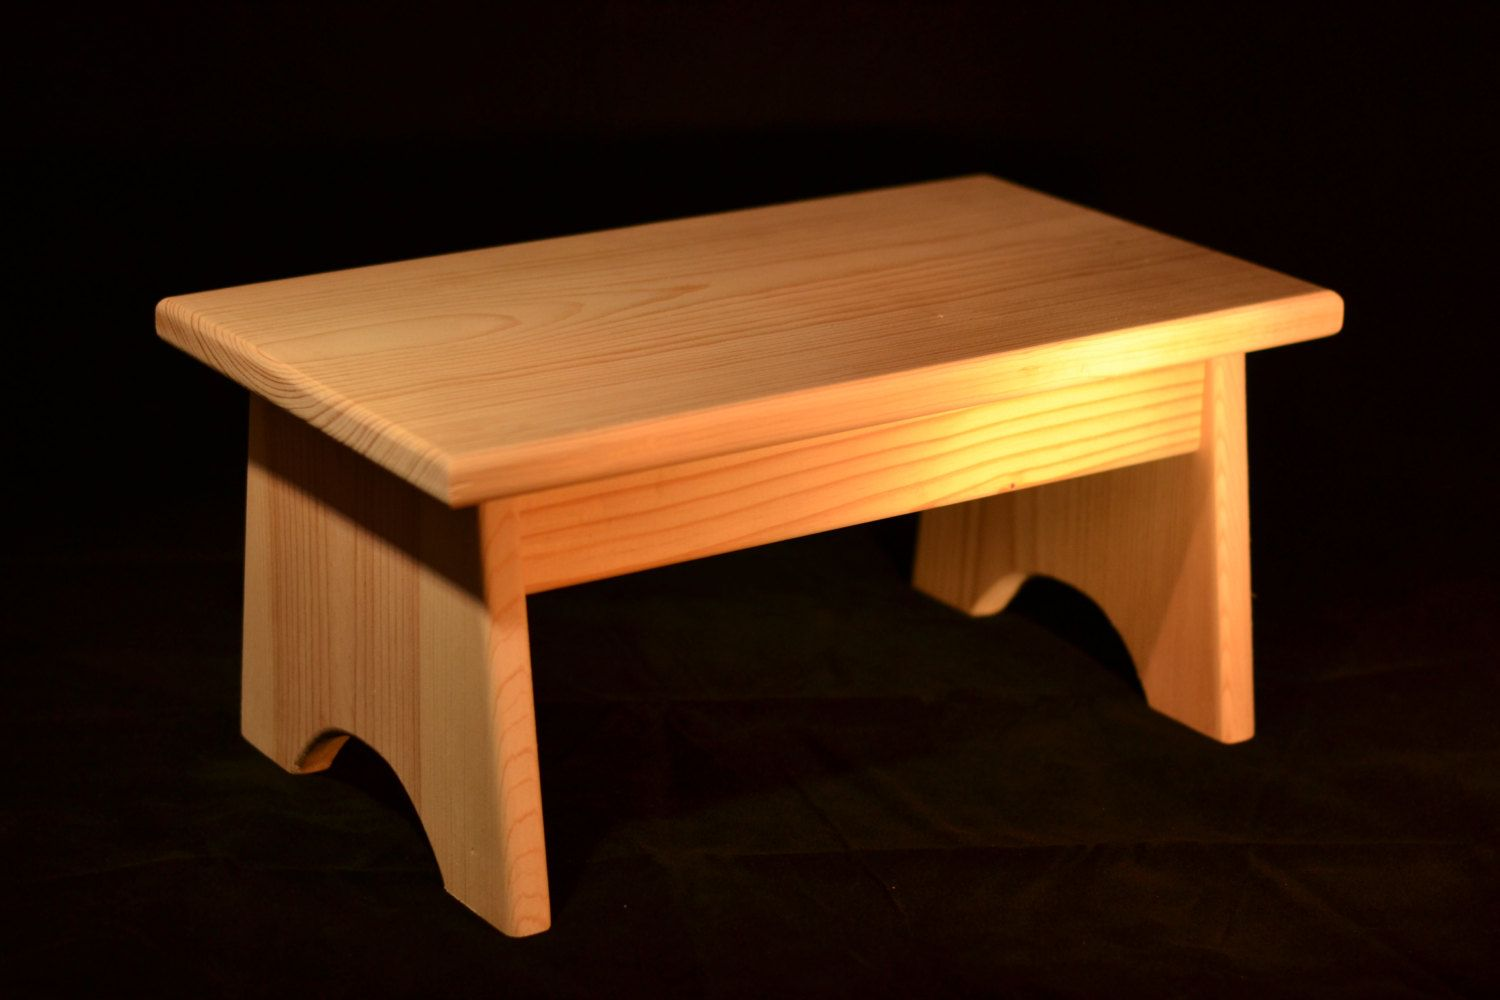 Best Wood Step Stool Unfinished Pine 16 L X 9 W X 7 5 H In 2020 400 x 300